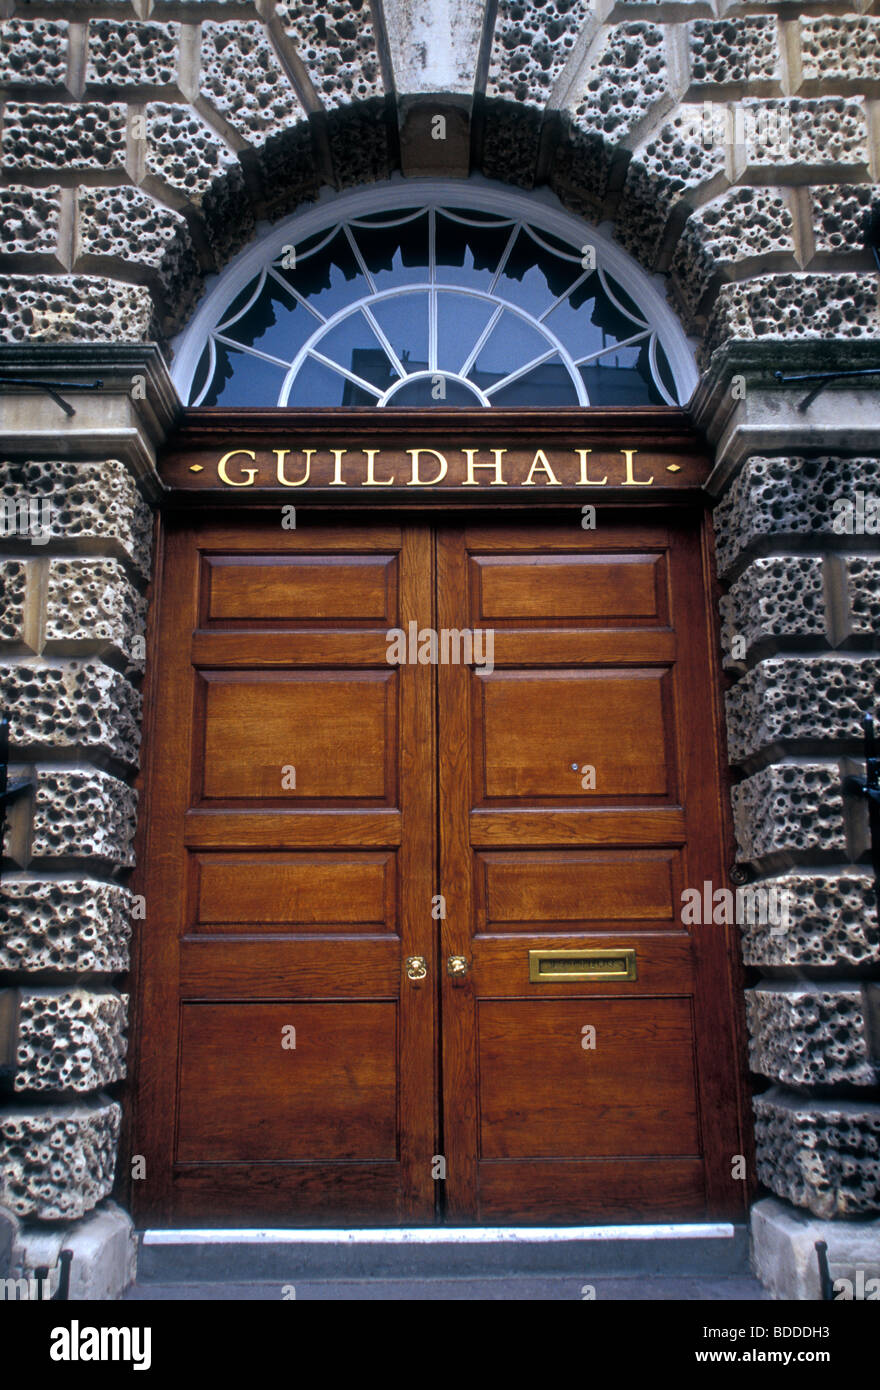 entrance, wooden doors, The Guildhall, Guildhall, Town Hall, High ...